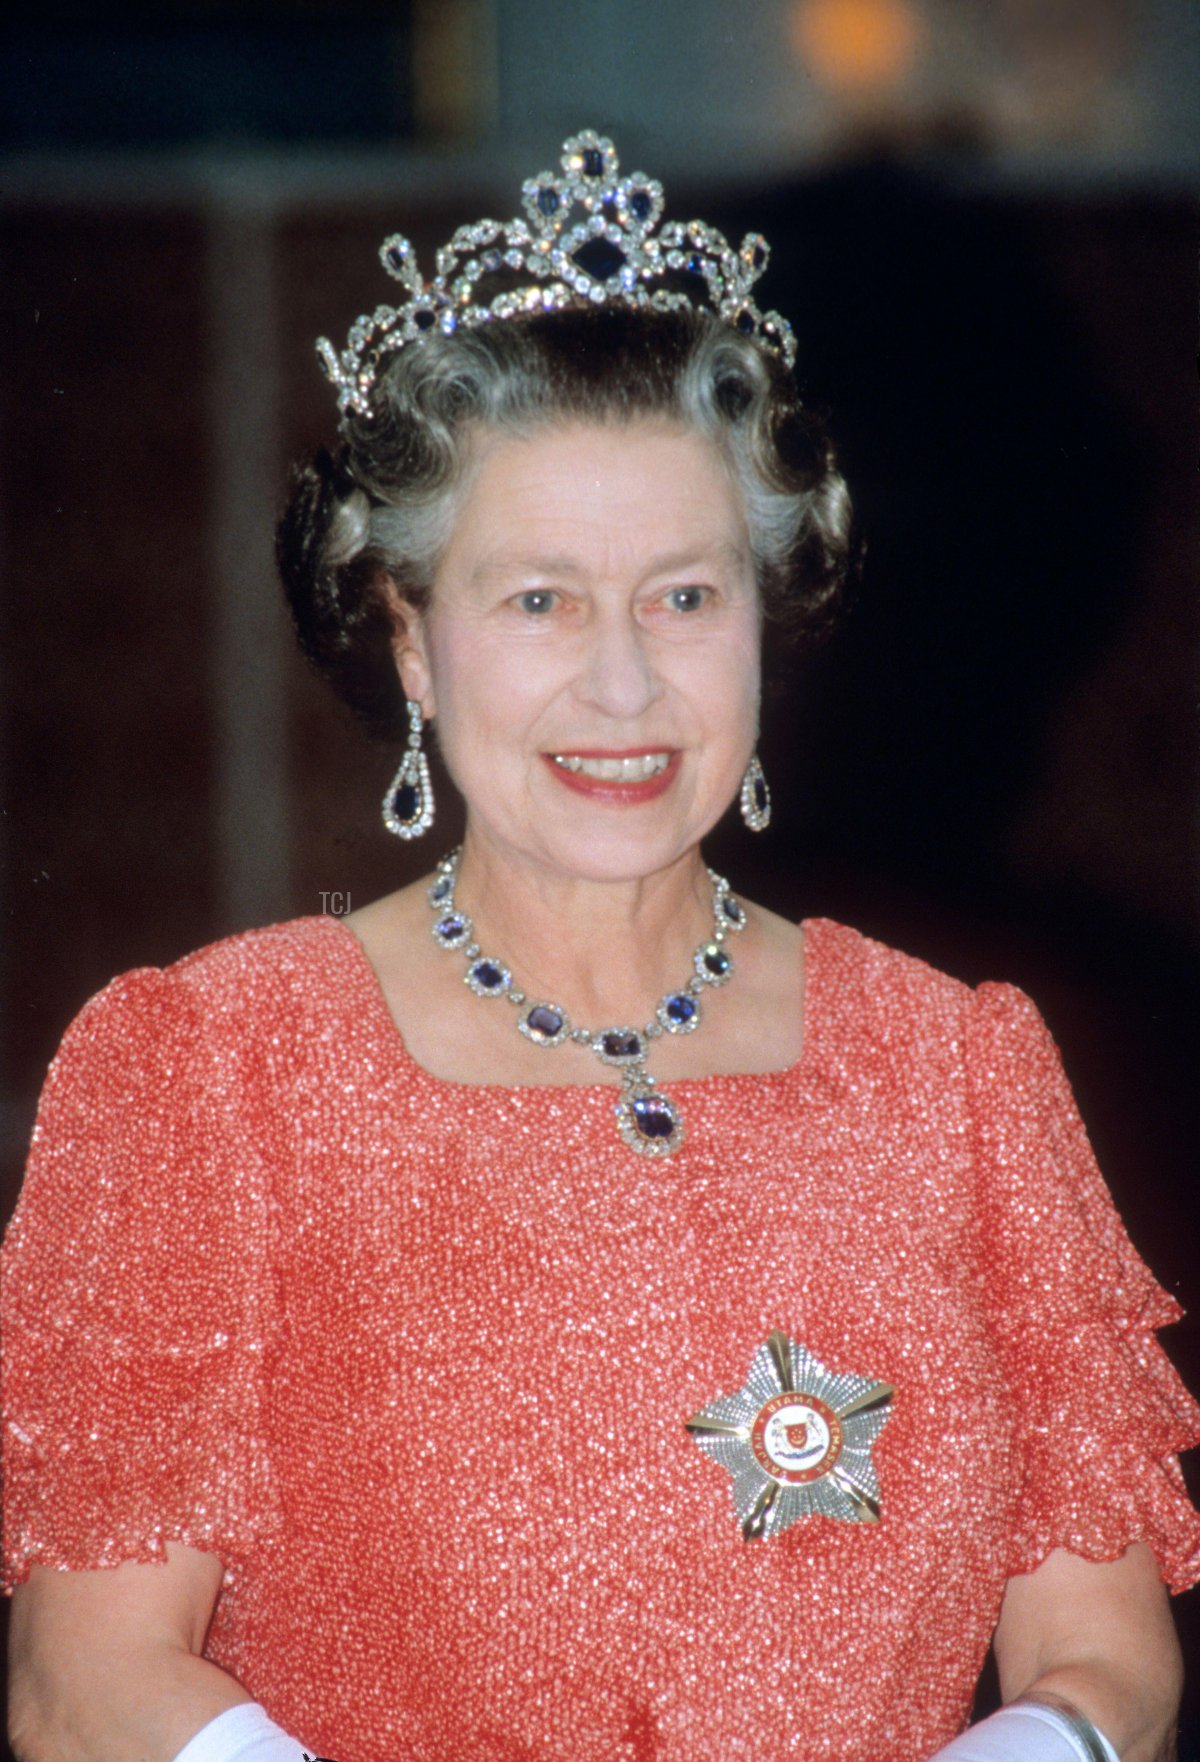 HM Queen Elizabeth II onboard HMY Britannia during her Royal visit to Singapore in 1989